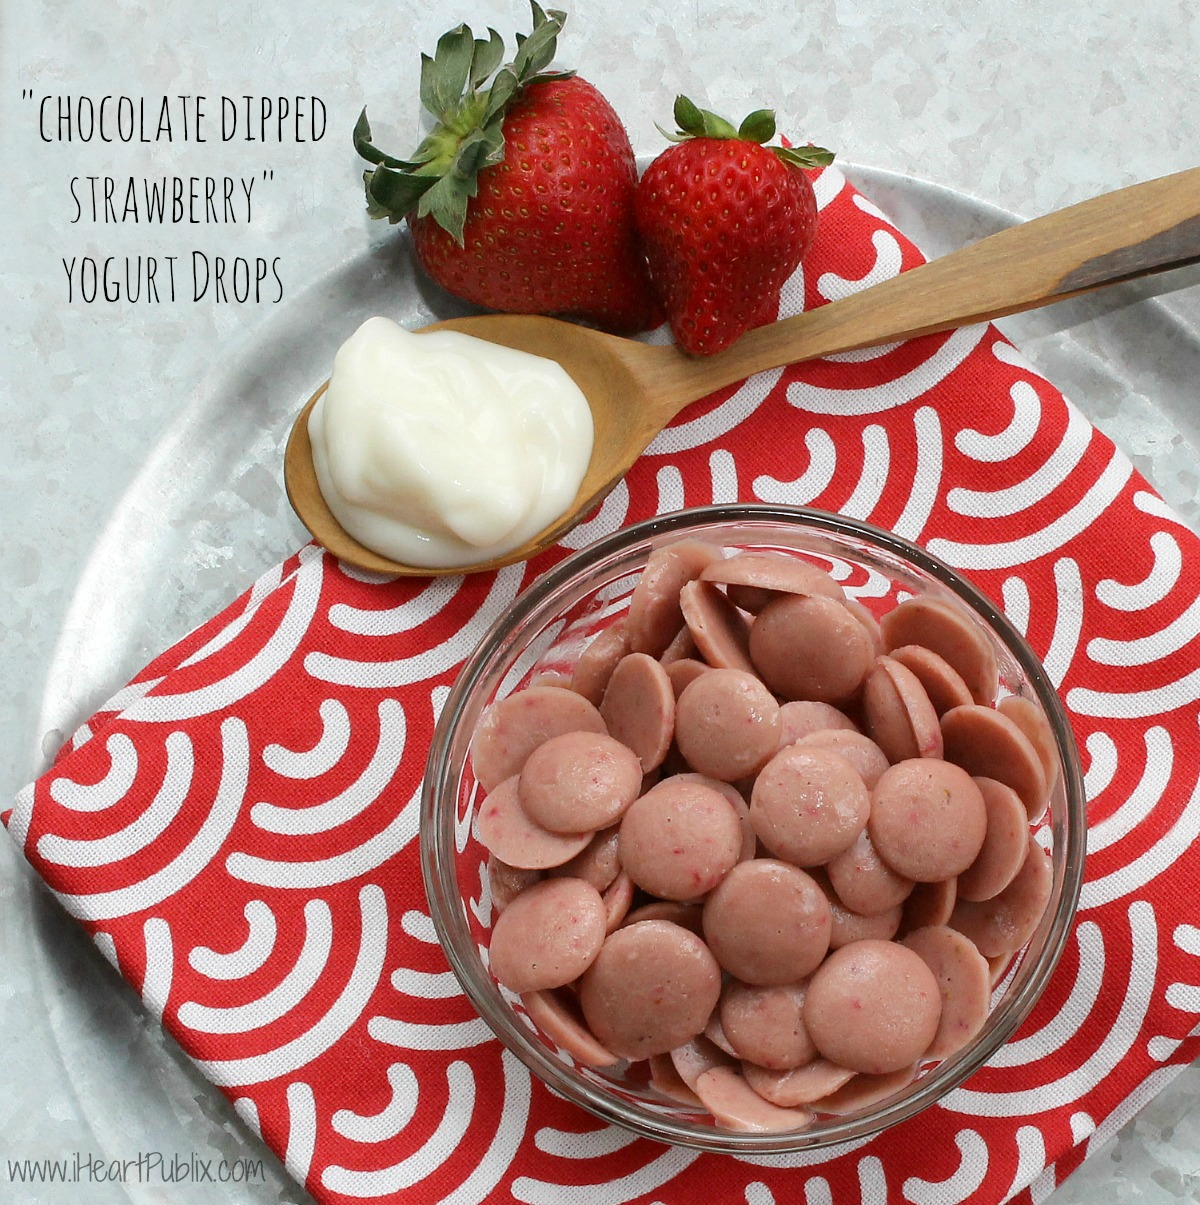 Chocolate Dipped Strawberry Yogurt Drops